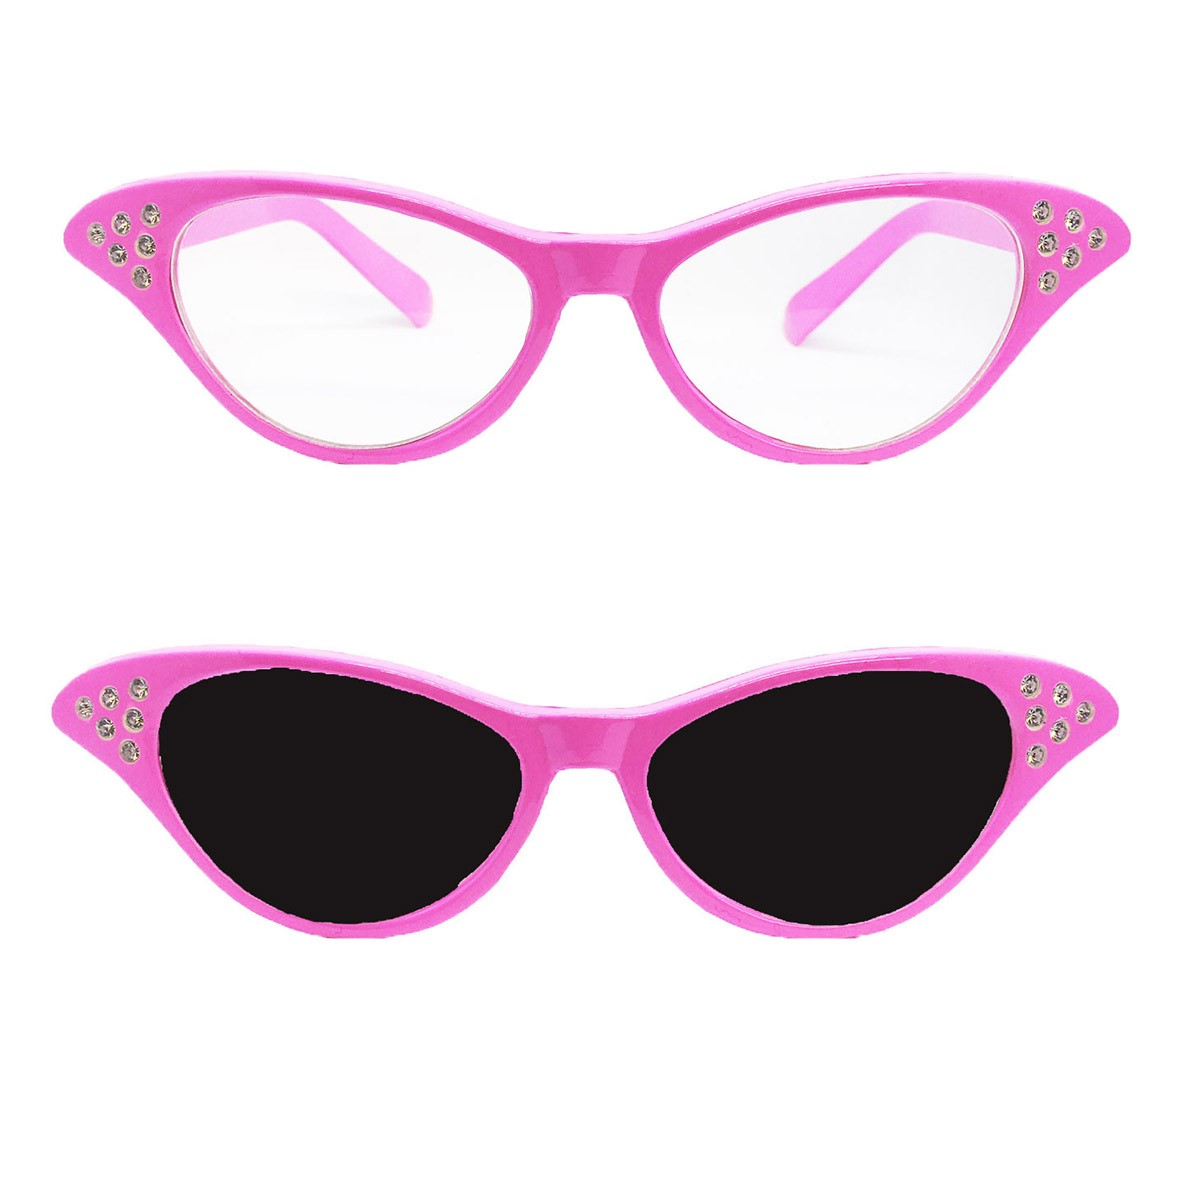 f012377fc6 Details about LADIES PINK GLASSES WITH DARK OR CLEAR LENSE 1950S 50s FANCY  DRESS ACCESSORY